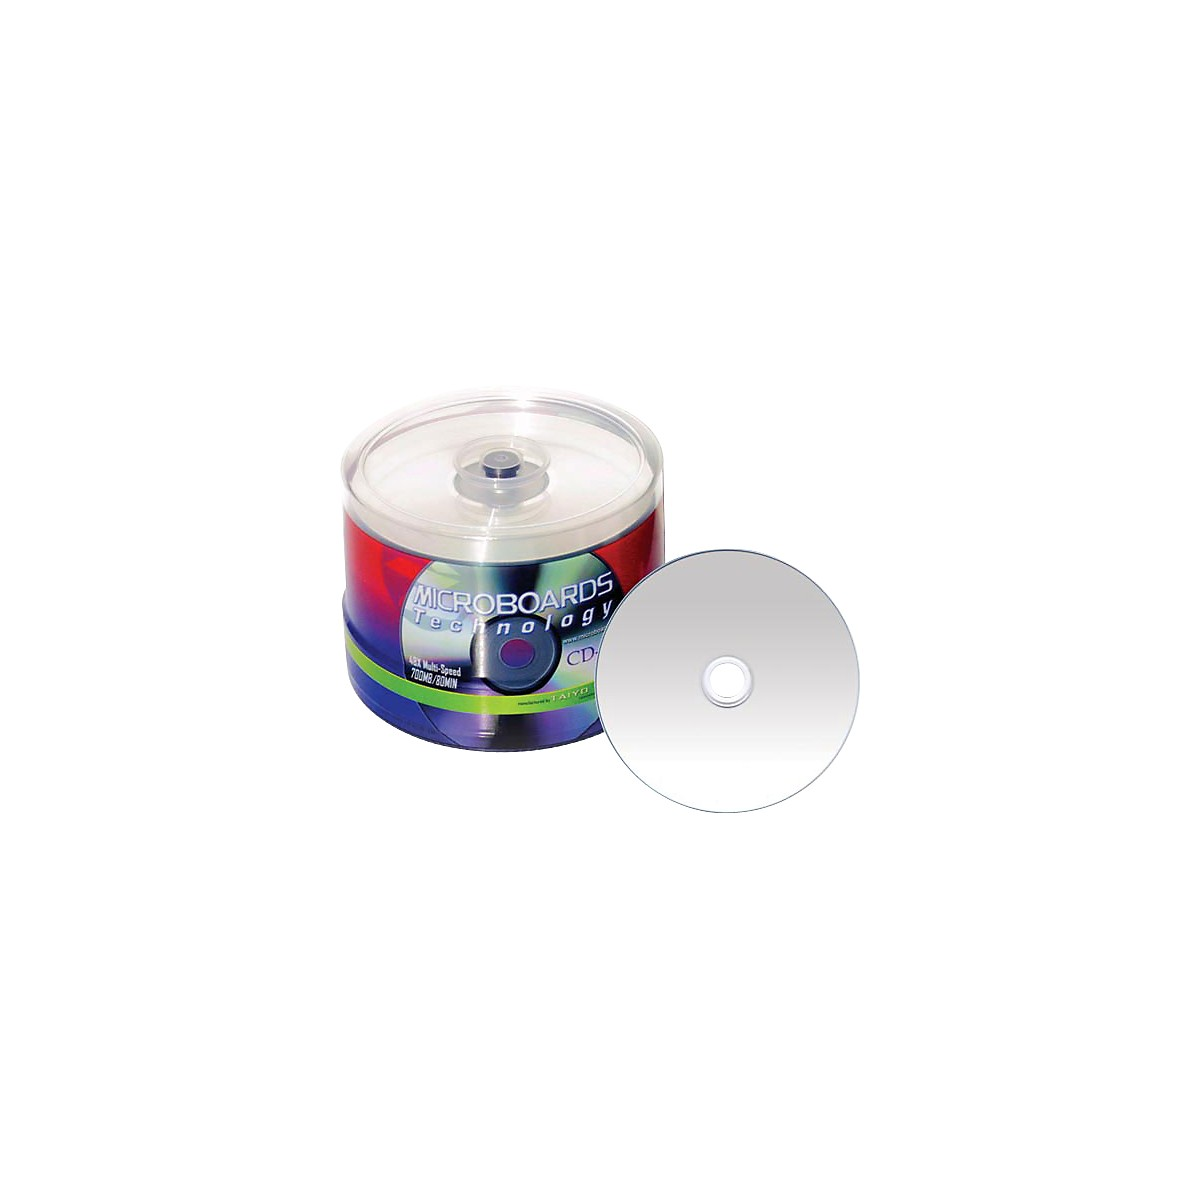 Taiyo Yuden 80 Minute/700 MB CD-R 52X Silver Thermal (Hub Printable-Everest) 100 Disc Spindle Regular